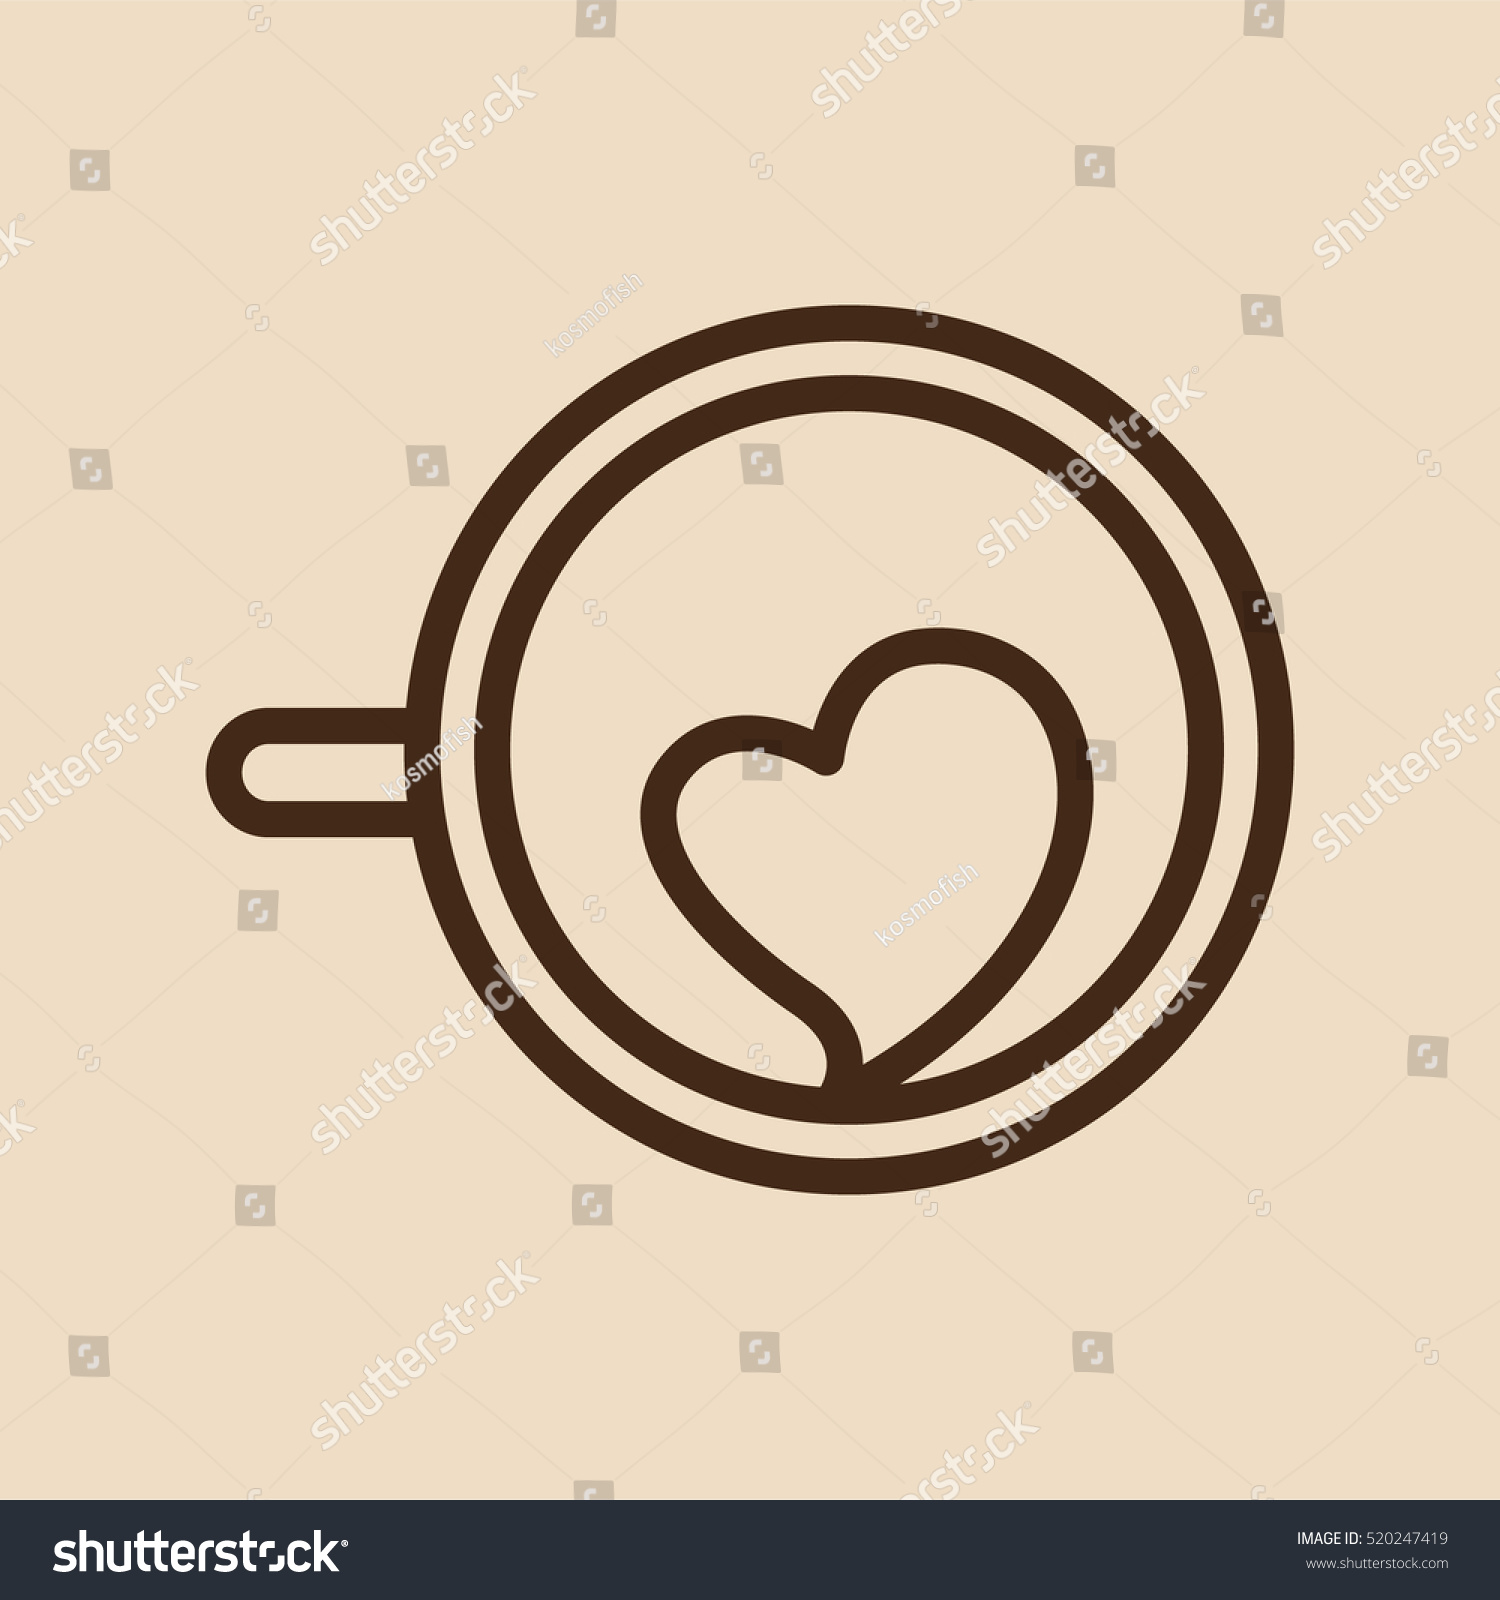 Cappuccino Coffee Cup Mug Minimalistic Flat Line Outline Stroke Icon Pictogram Symbol